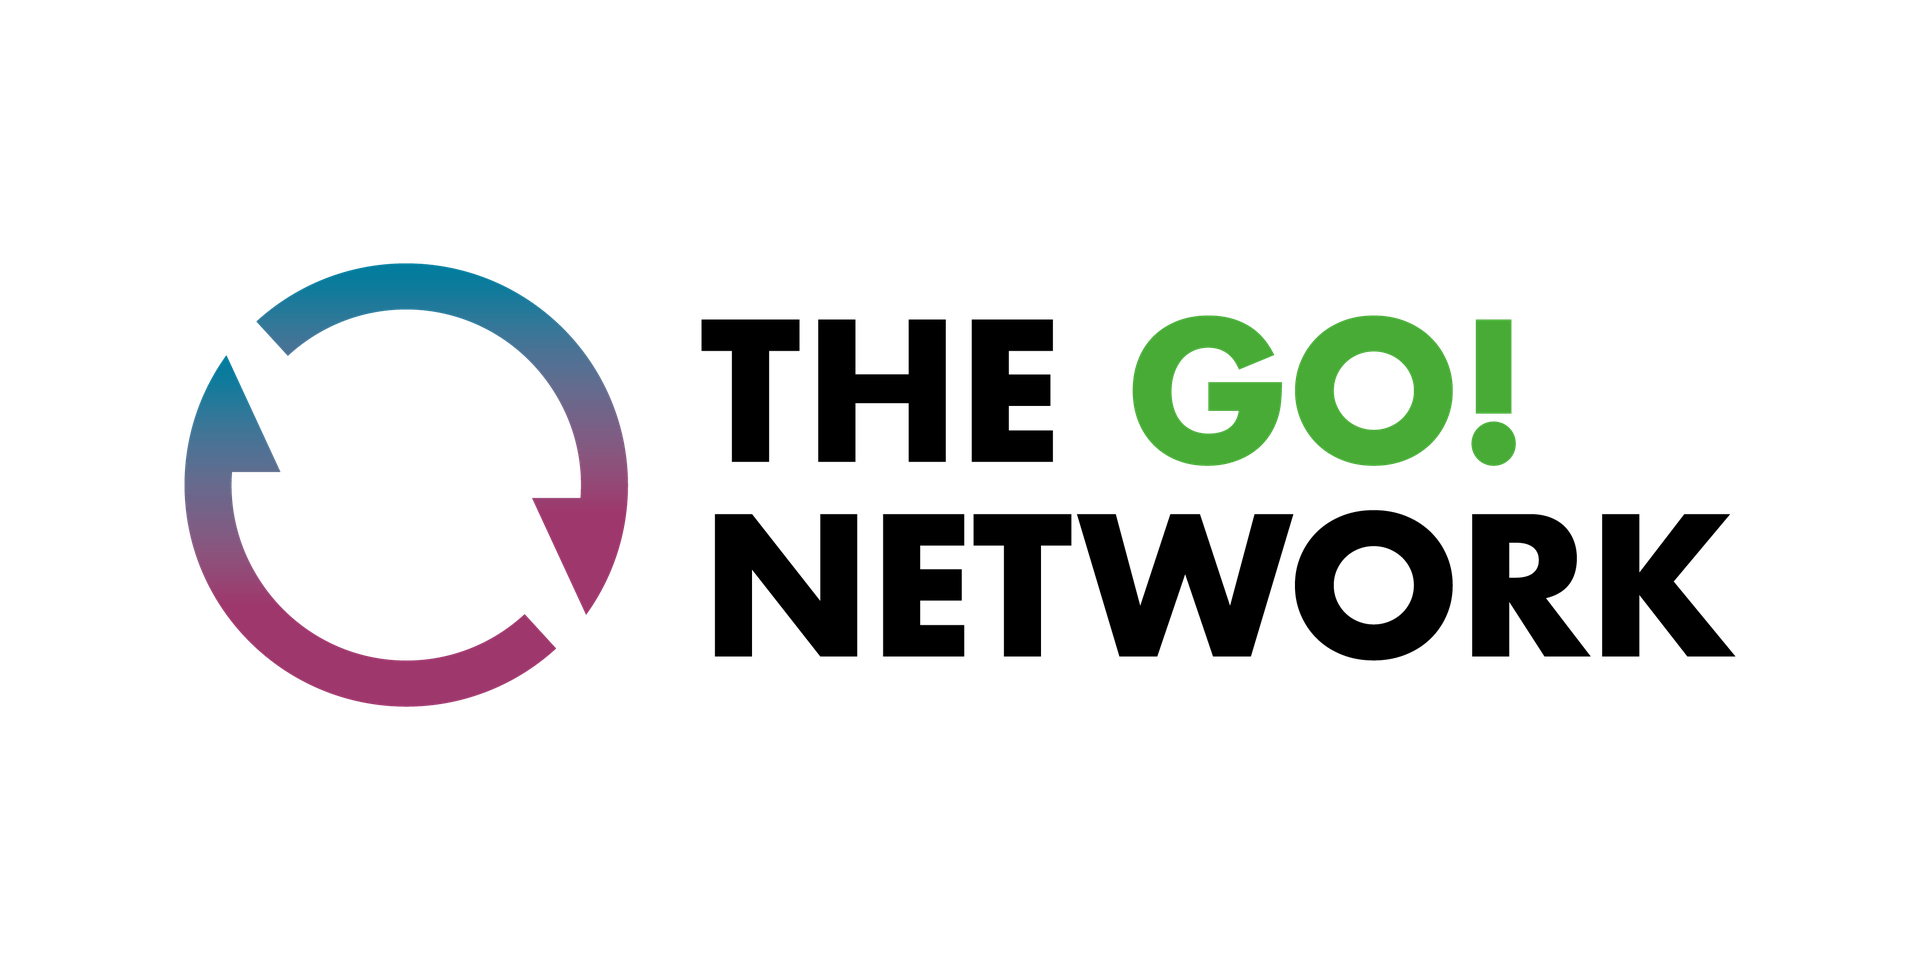 Learn more about the GO! Network